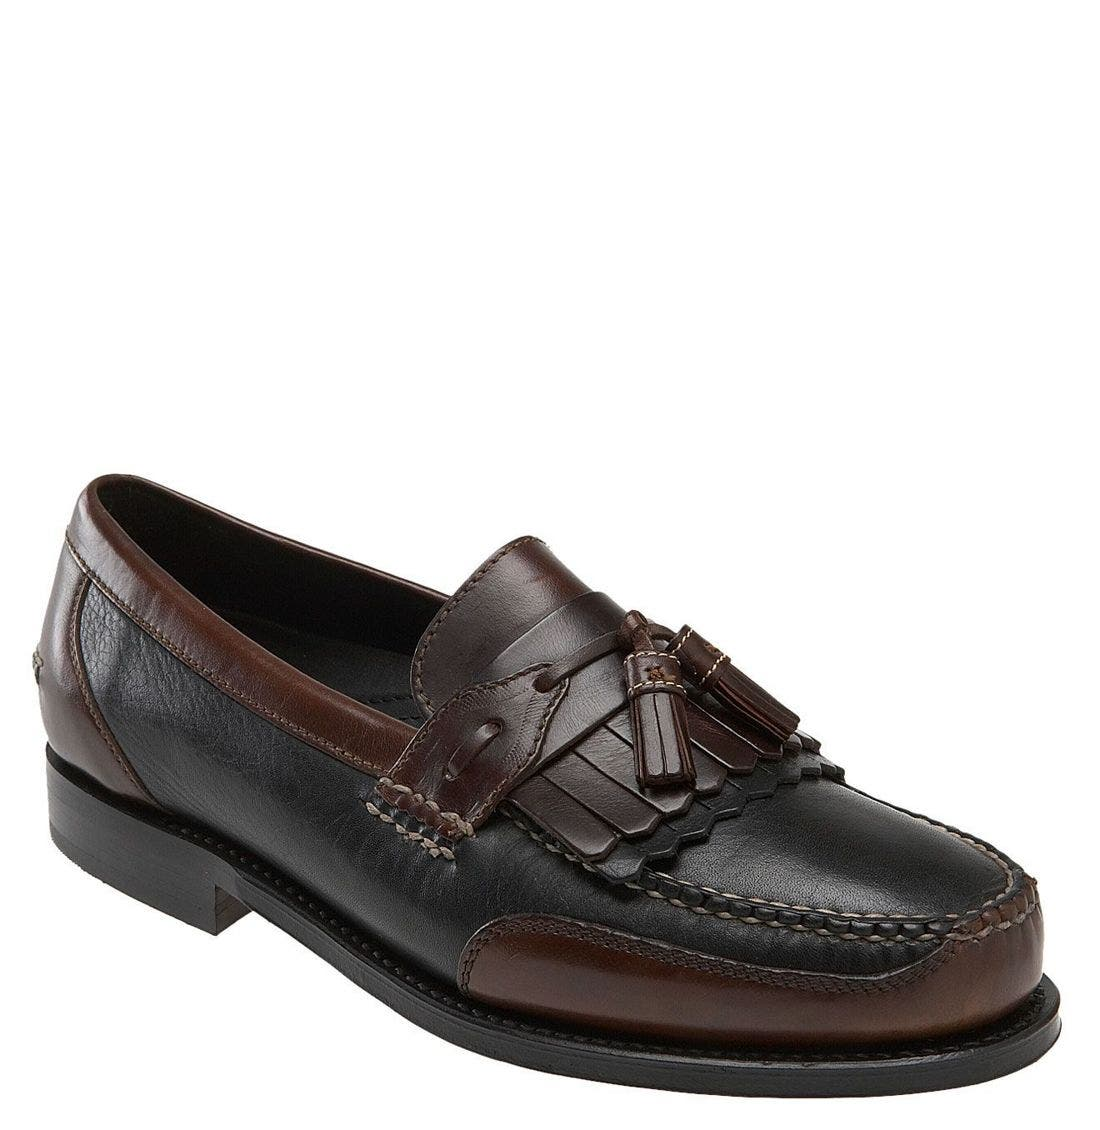 Main Image - Neil M 'Murphy' Loafer